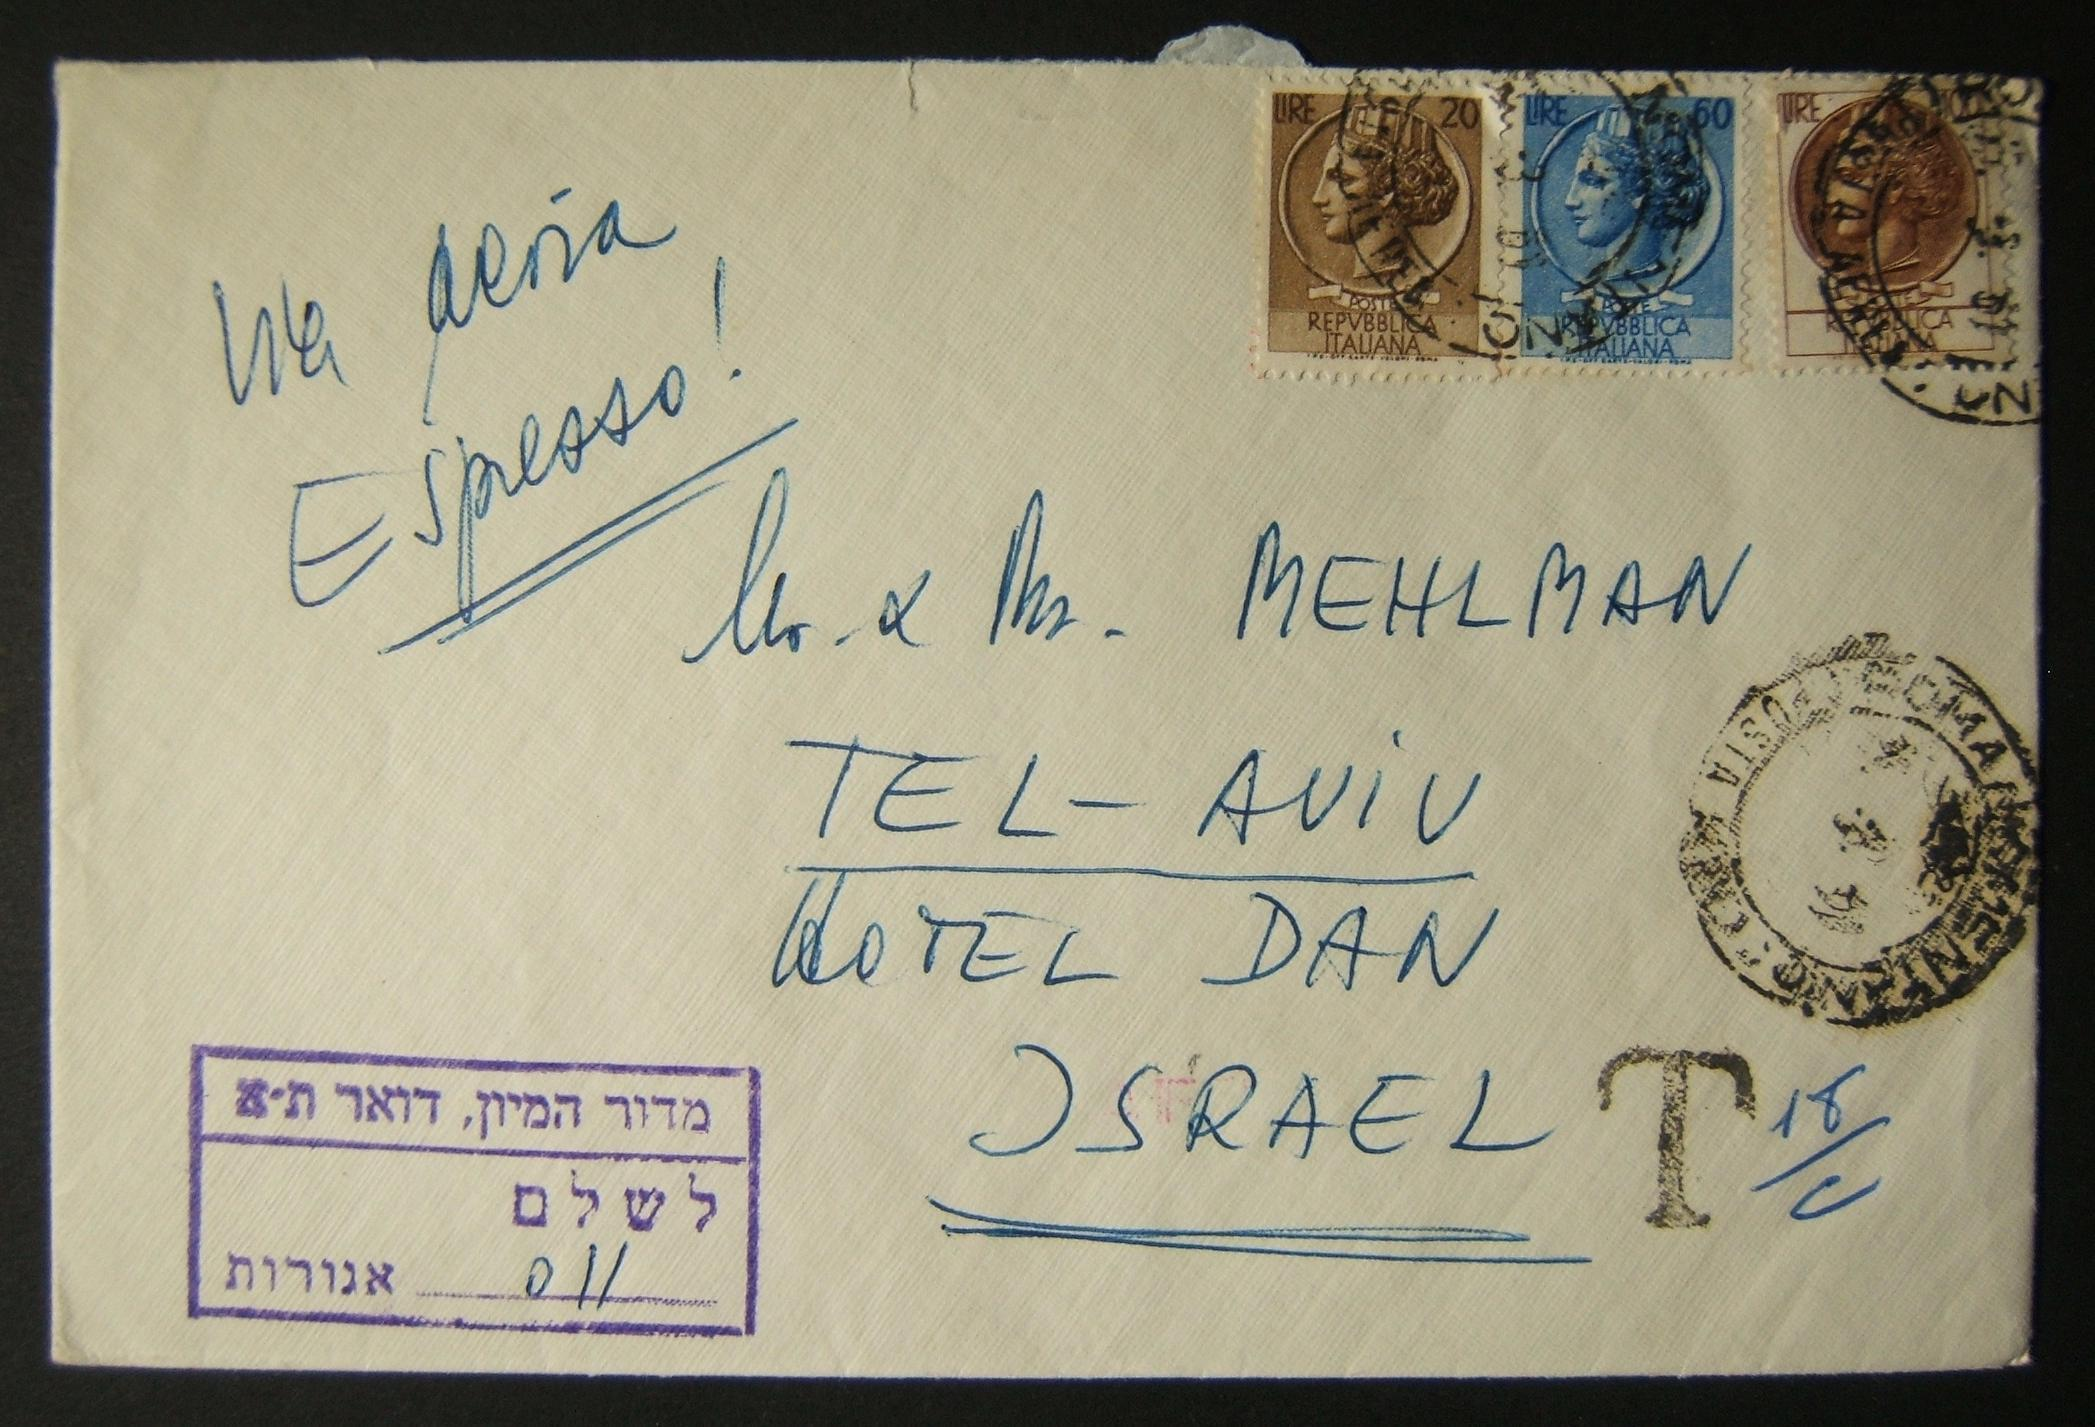 1961 incoming Italian taxed mail: express airmail cover ex ROME to TLV underfranked at 180 Lira and taxed in Israel for 11 Agorot; opened roughly at top.